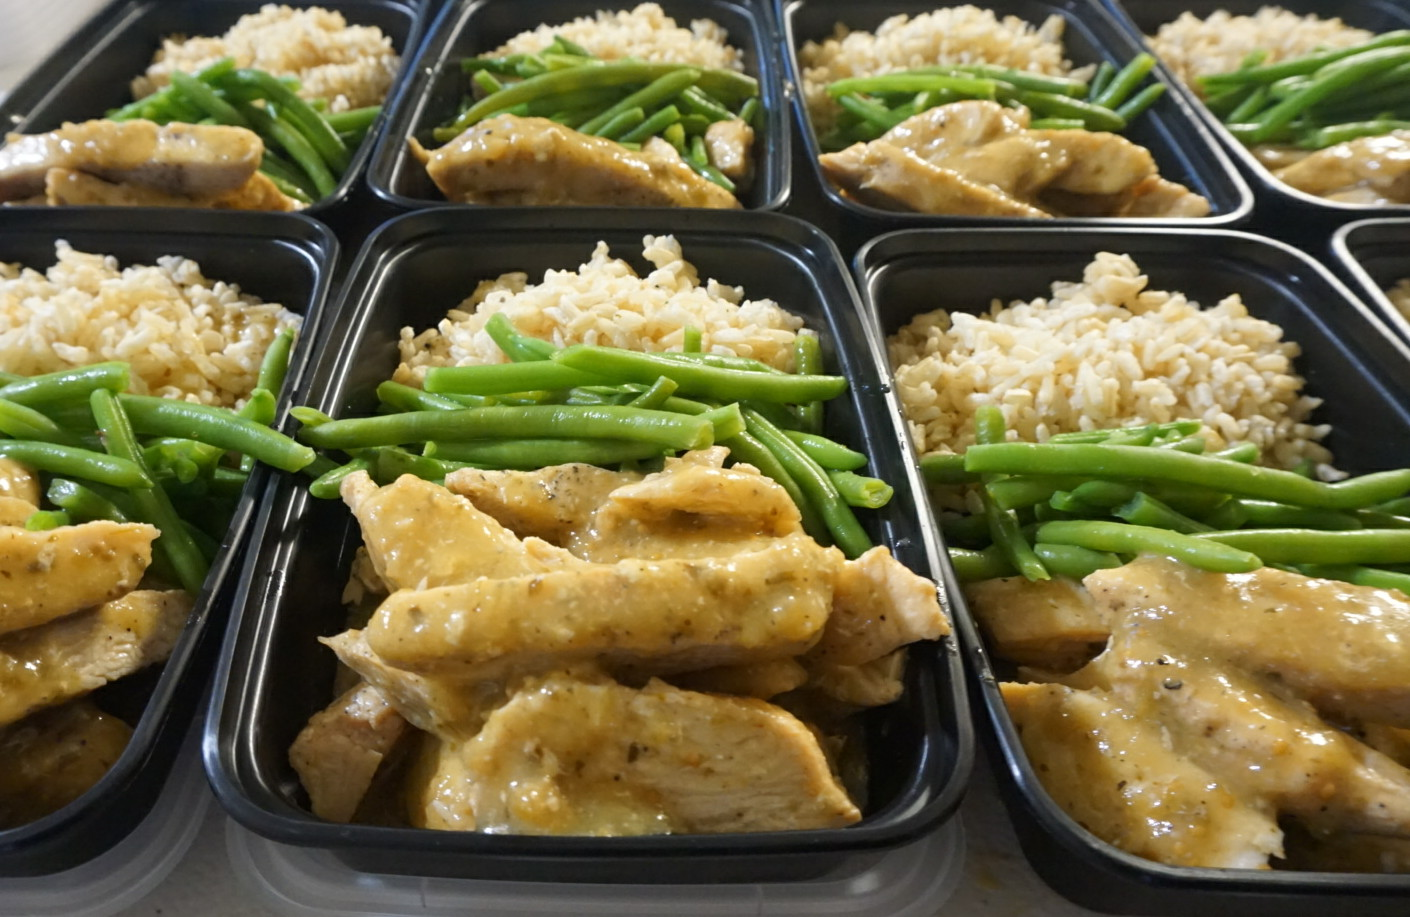 Chicken in Tomatillo Sauce  Savory, a little spicy, tangy AND creamy chicken with tomatillo sauce served with brown rice and a side of green beans